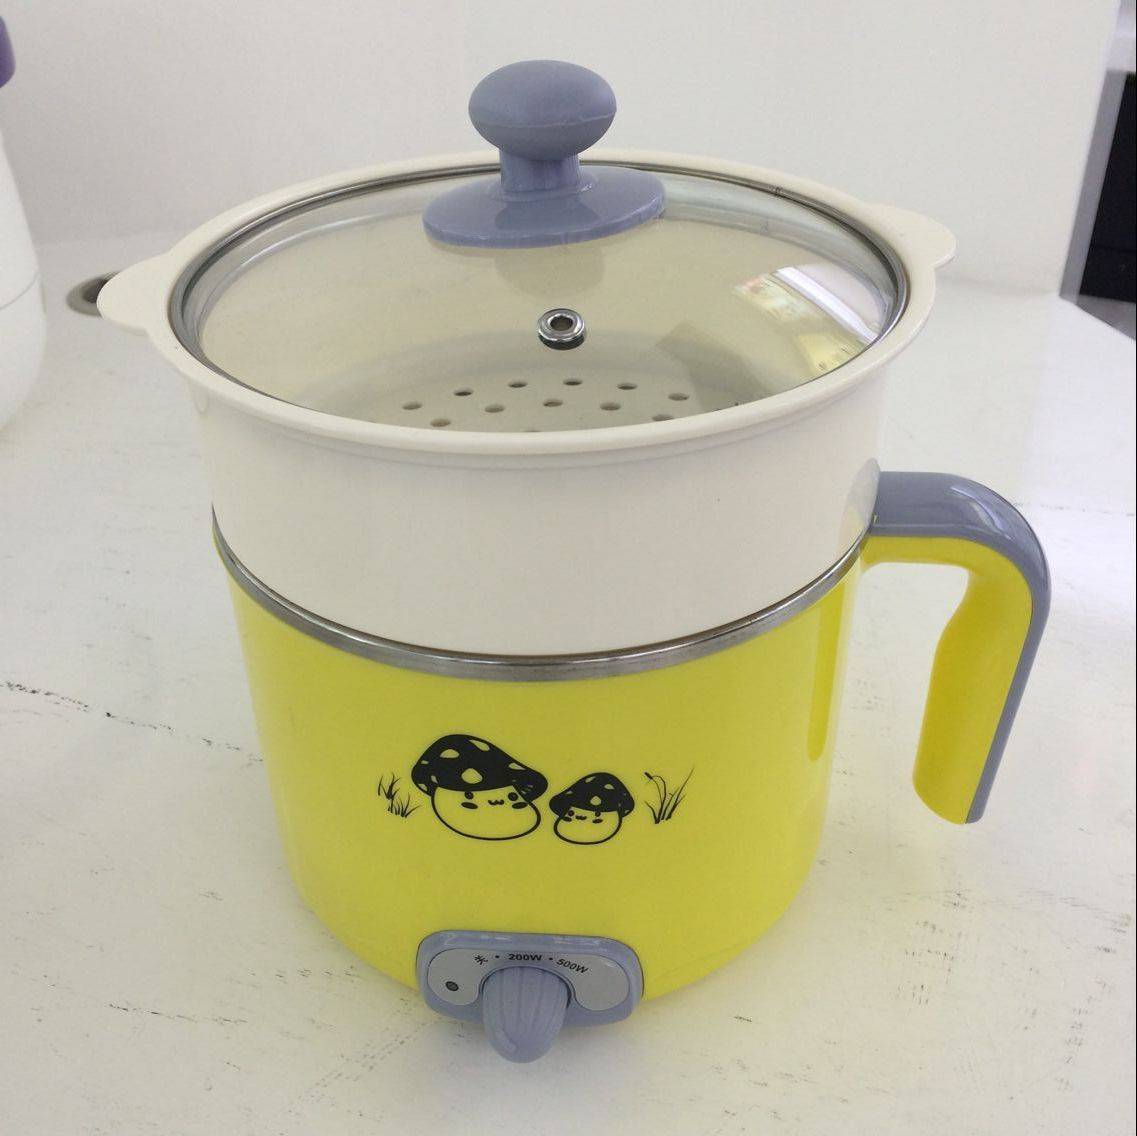 Model#ZMQ-C egg boiler noodle cooker mini cooker